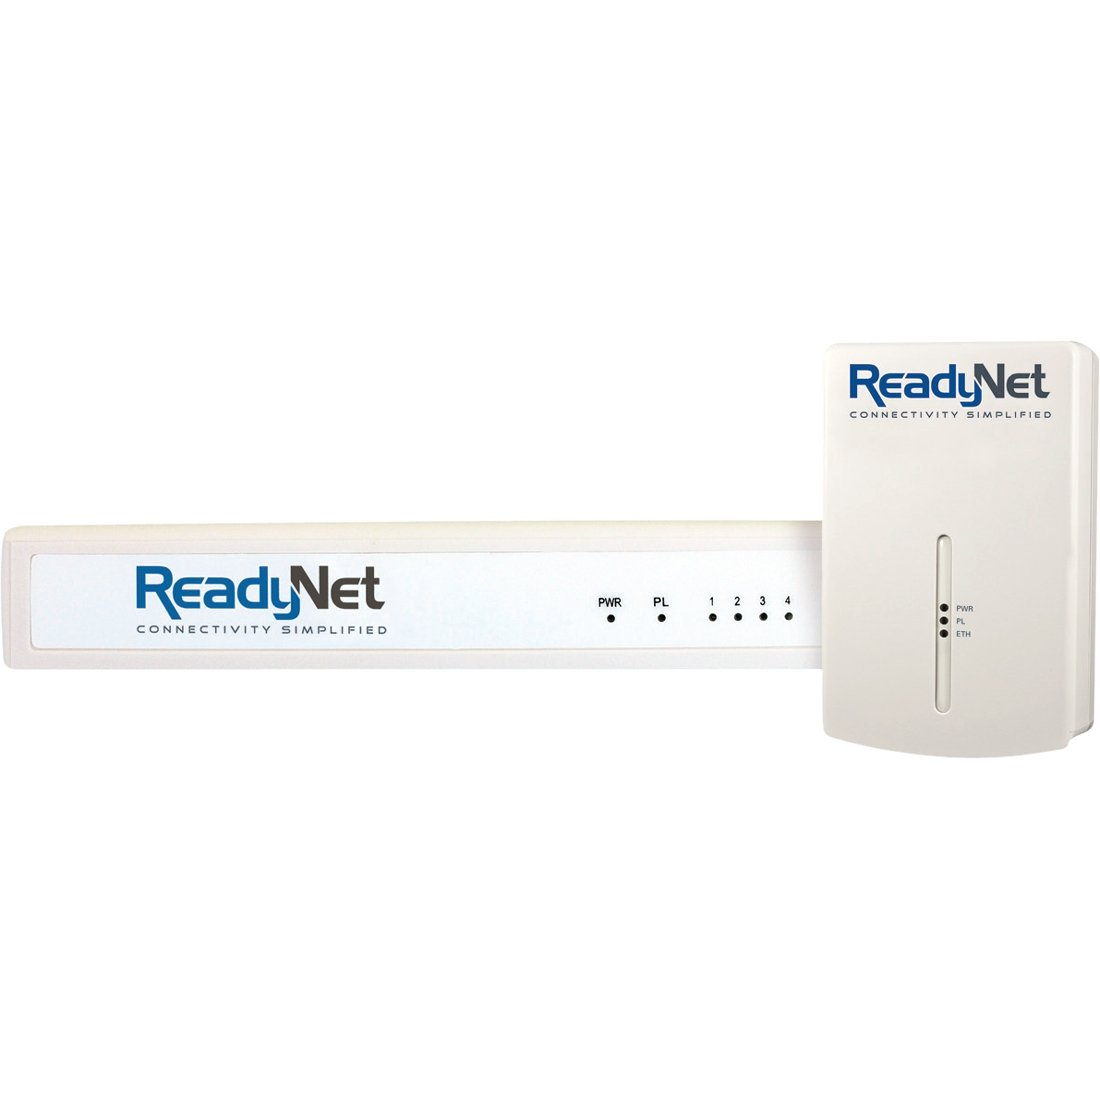 ReadyNet Powerline Network Switch HD Video Kit - 200 Mbps - ESW200 by VOLTBOLT